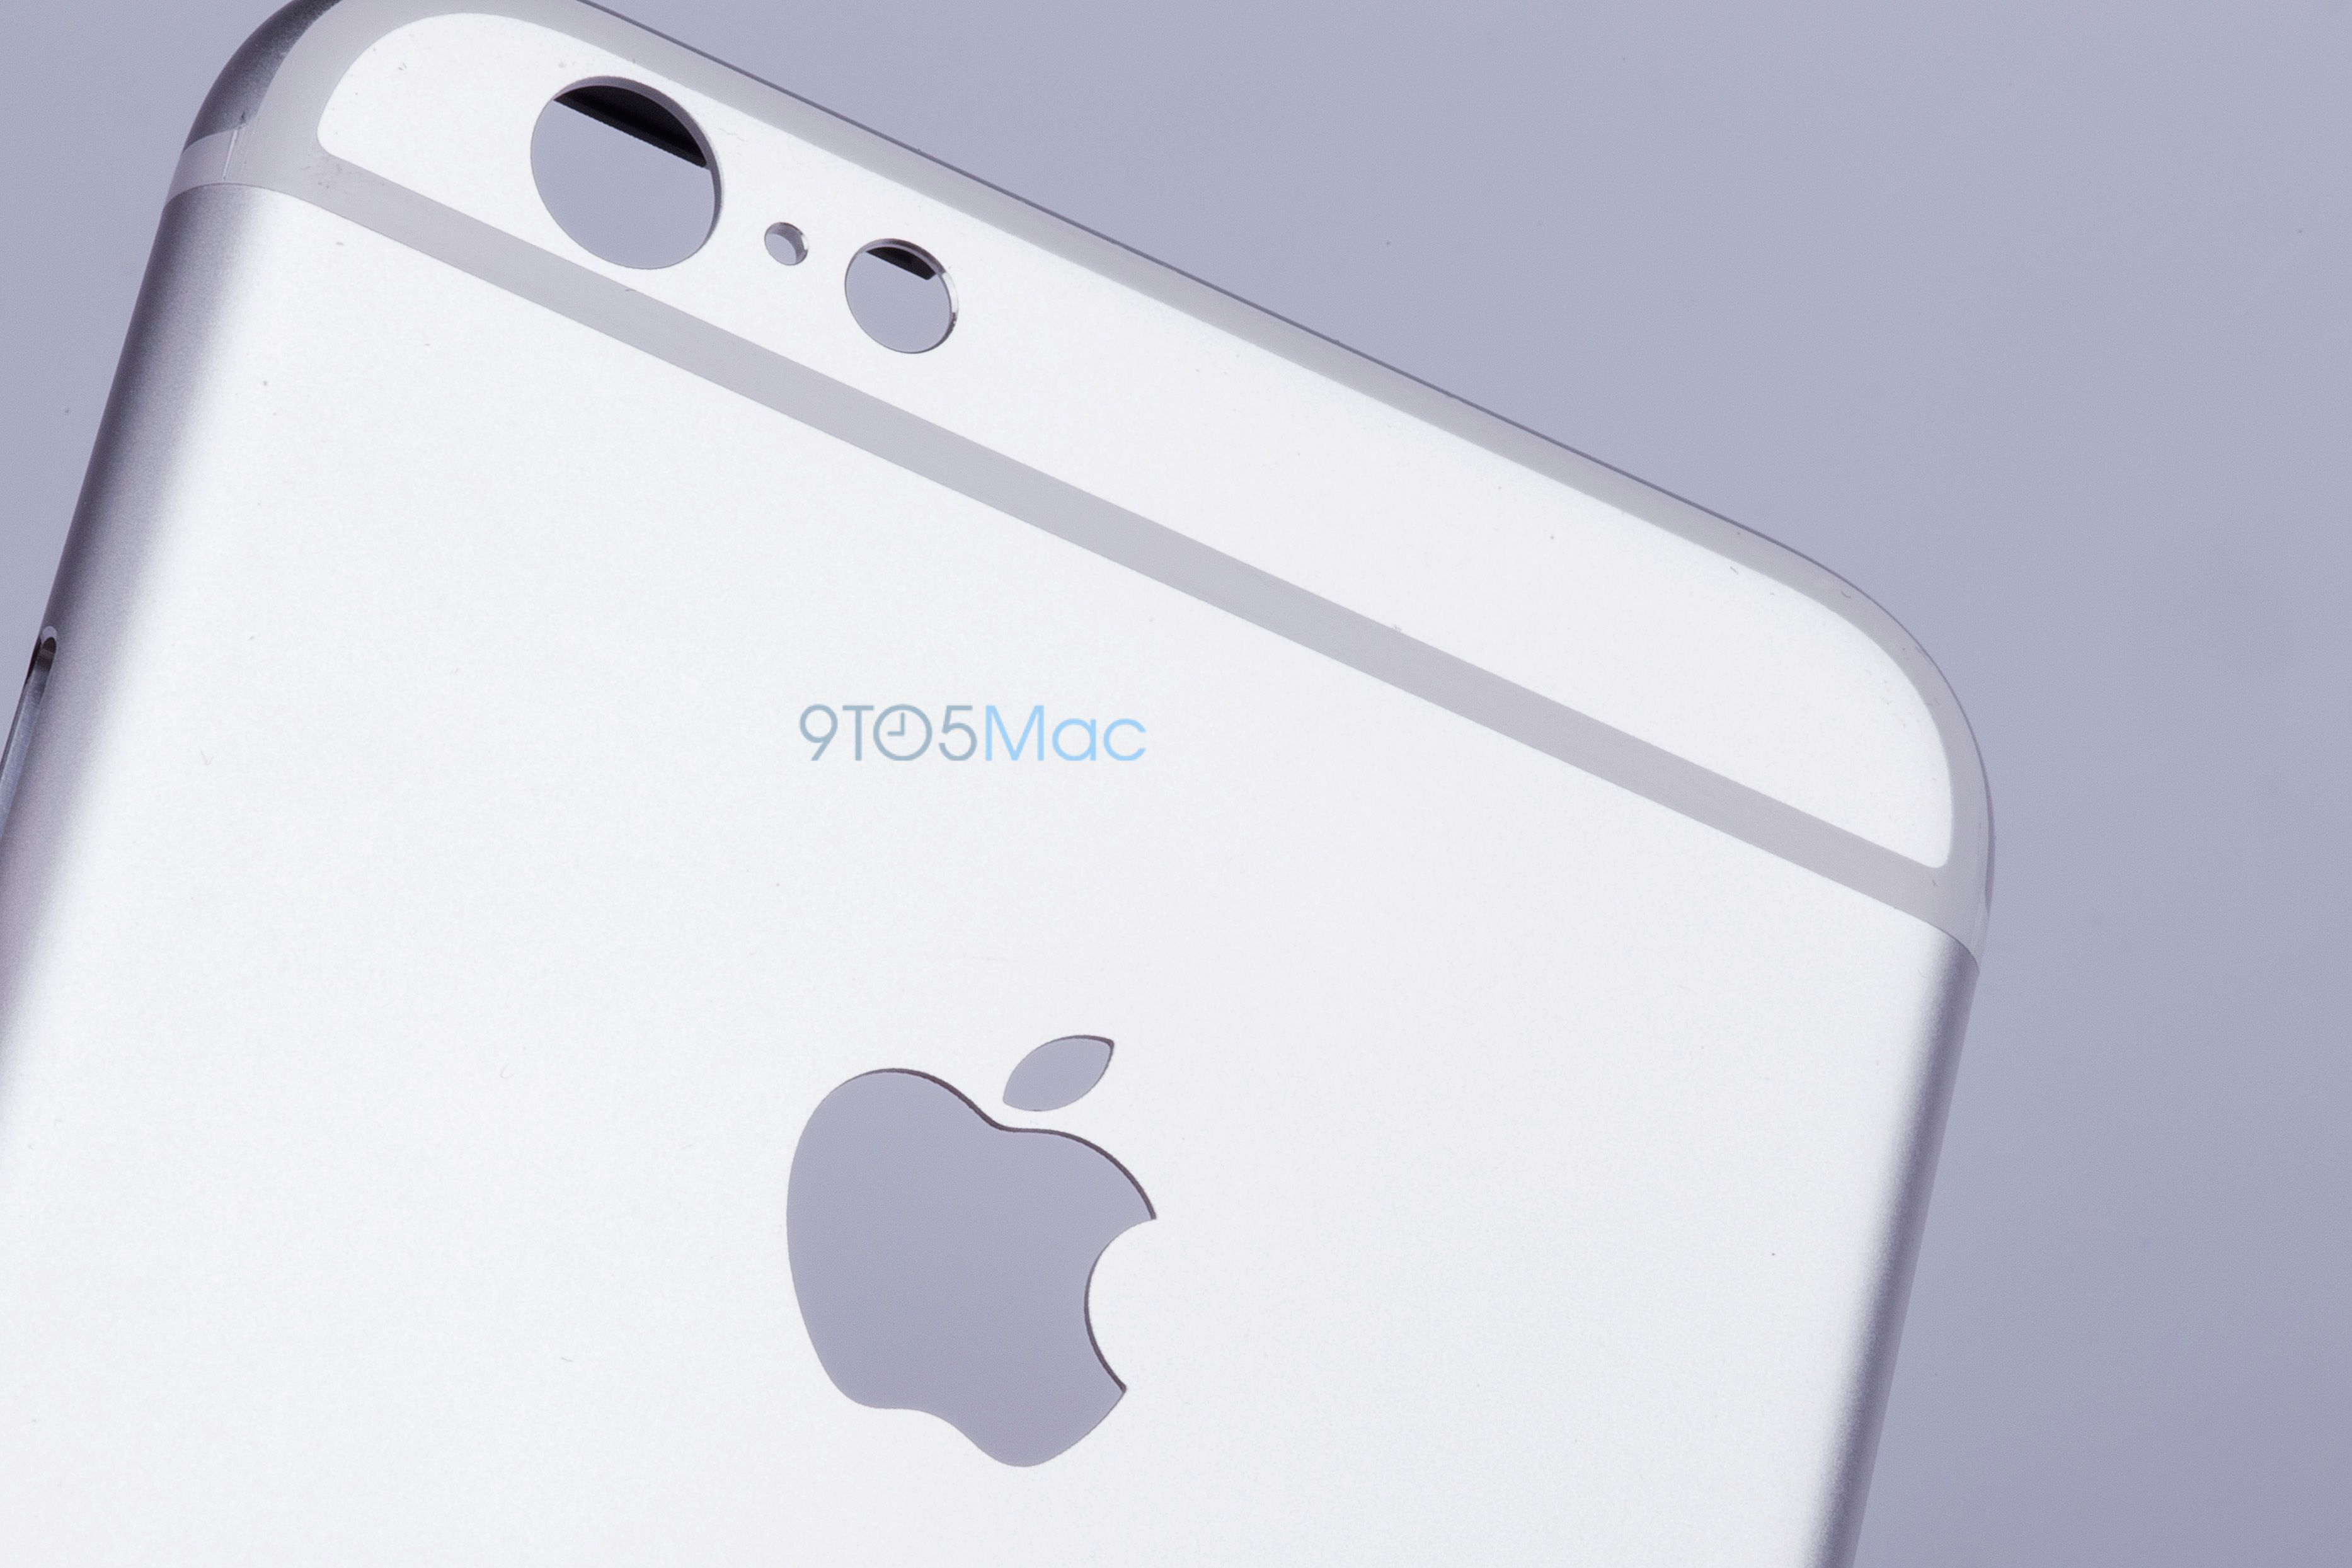 Revealed: iPhone 6S will look nearly identical outside, but expect numerous changes inside [Gallery]